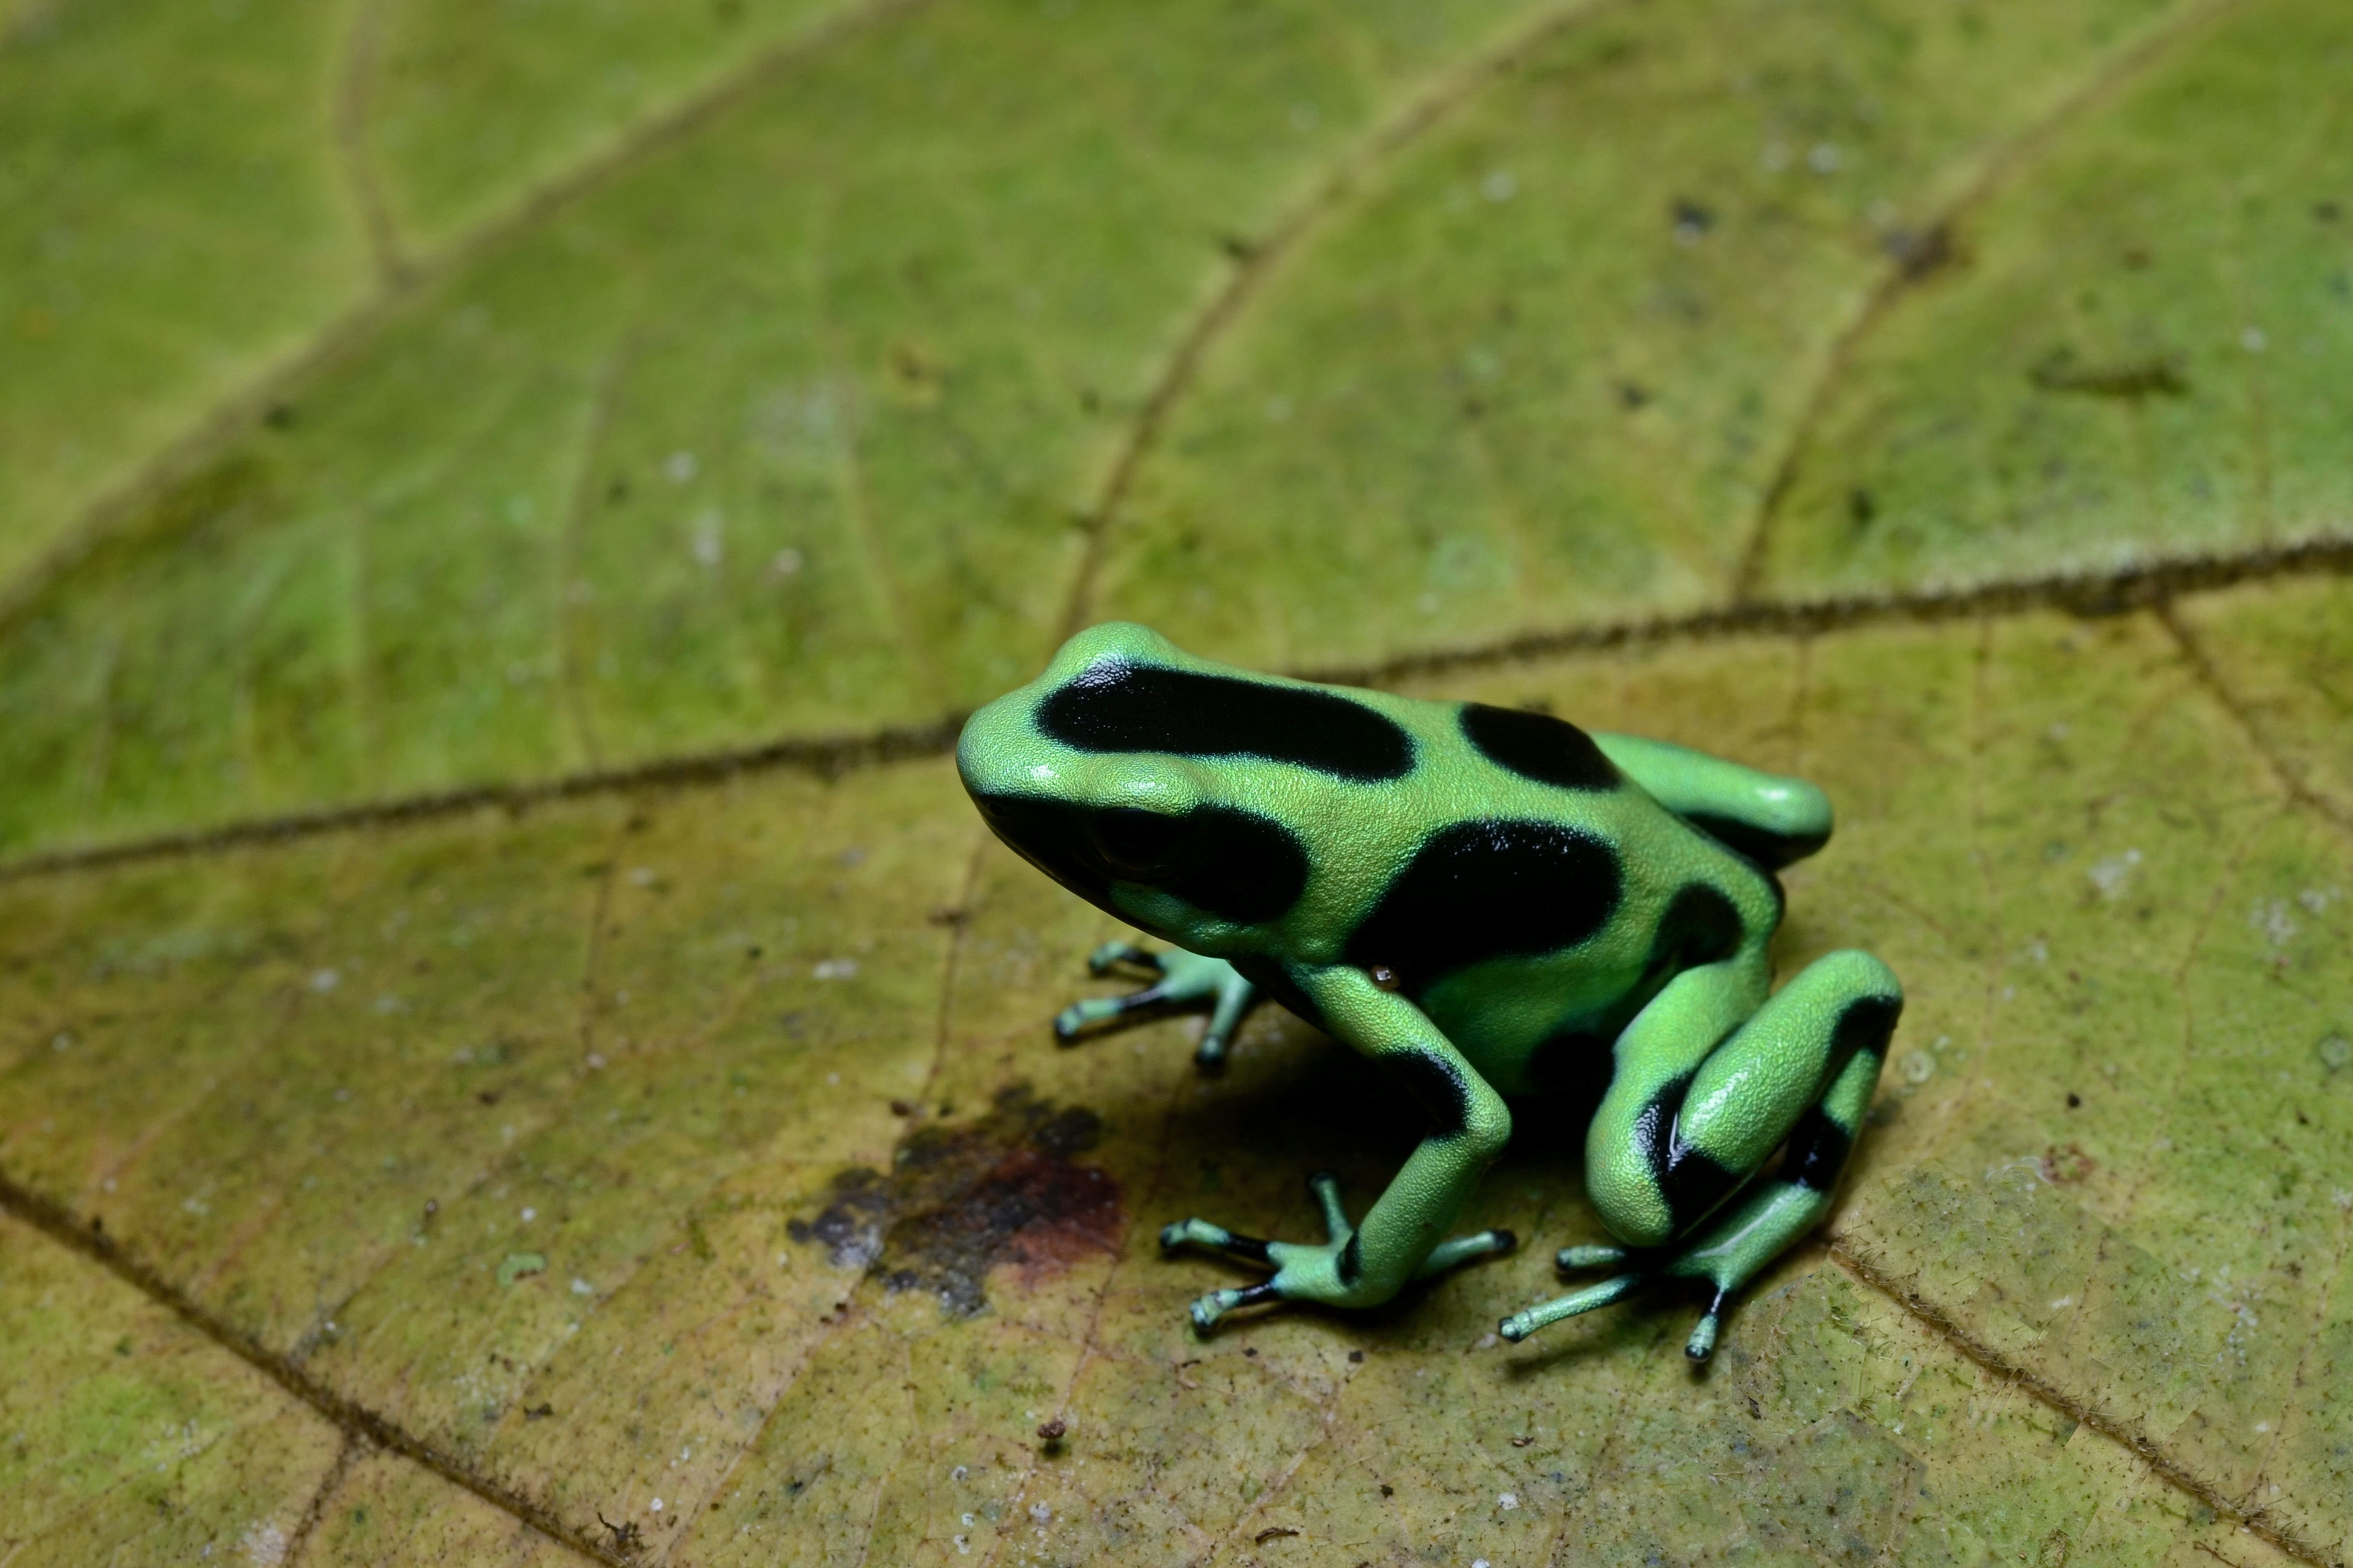 File:Flickr - ggallice - Green and black poison dart frog ... Green Frogs Poisonous